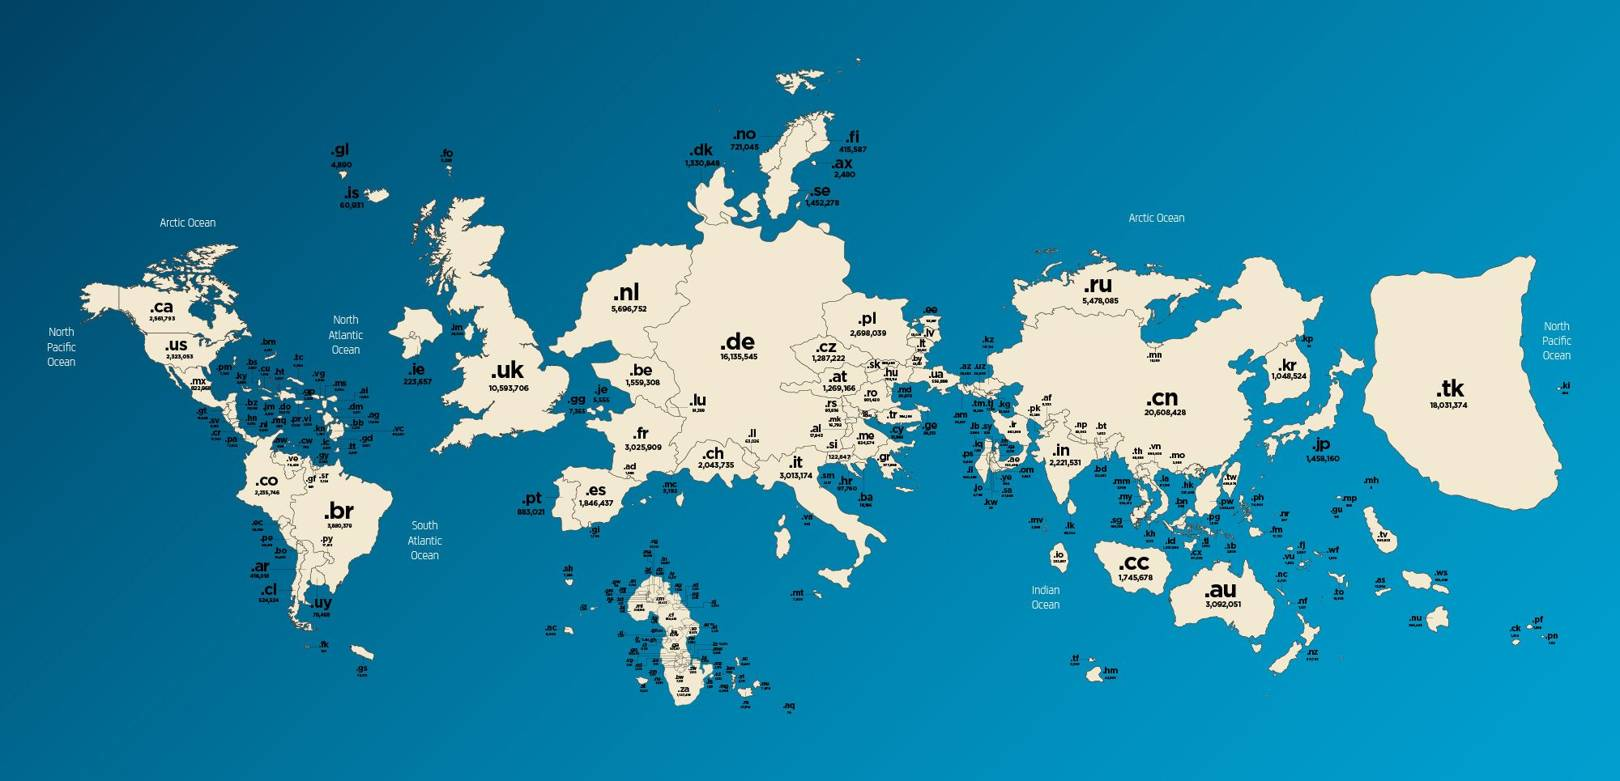 Map of domain names flips the world on its head | WIRED UK Map Domain on hotels austin tx map, media map, solid map, proxy map, isp map, function map, topology map, company map, ip map, dhcp map, code map, protocol map, local map, data map, target map, context map, source map, service map, my career map, server map,